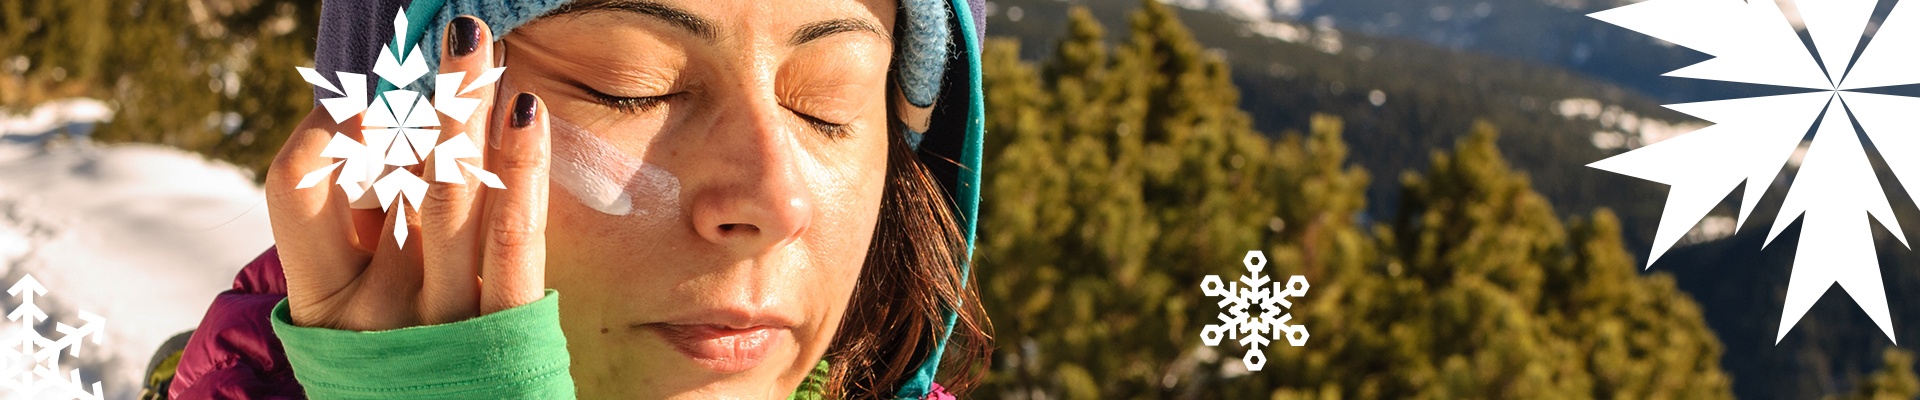 The sun is still powerful in winter - be sure to apply sunscreen to protect your skin.